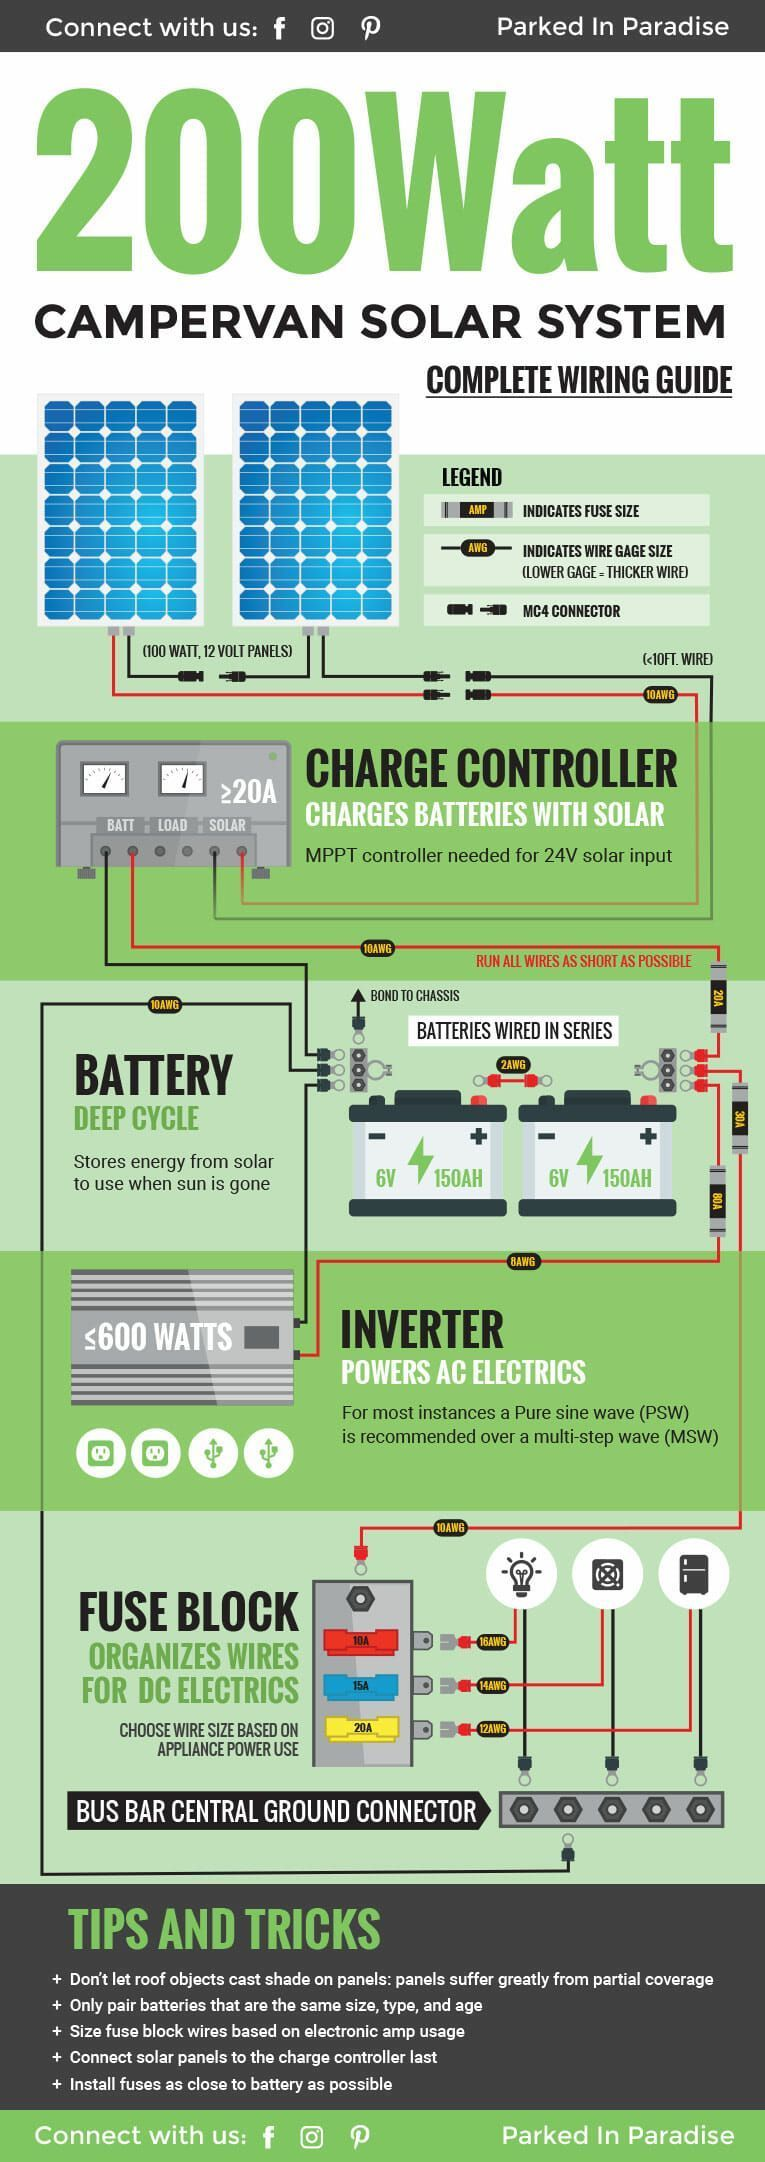 hight resolution of complete diy wiring guide for a 200 watt solar panel system perfect diy garage wiring